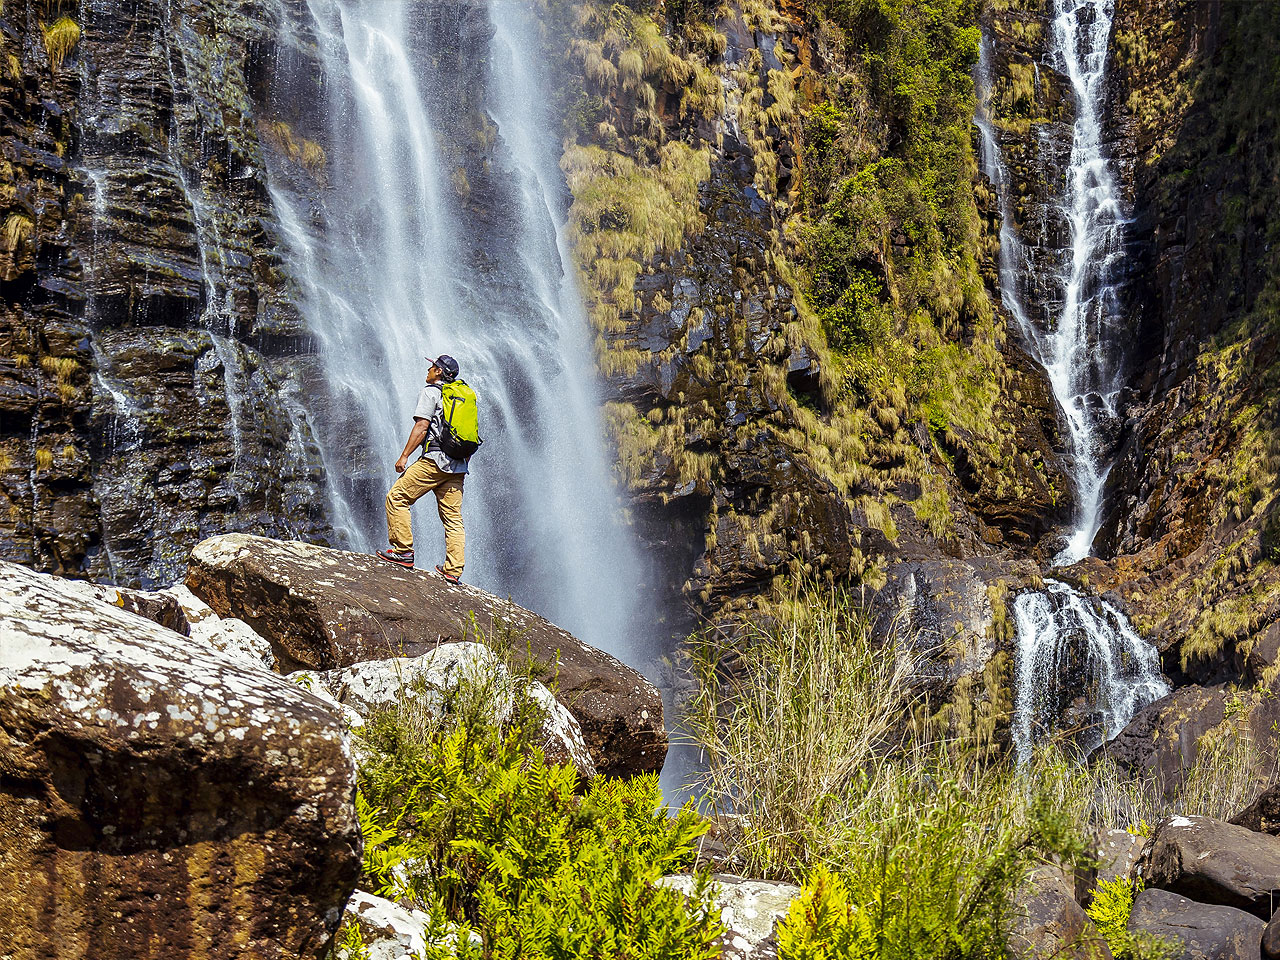 A backpacker standing on a rock at the base of a waterfall.